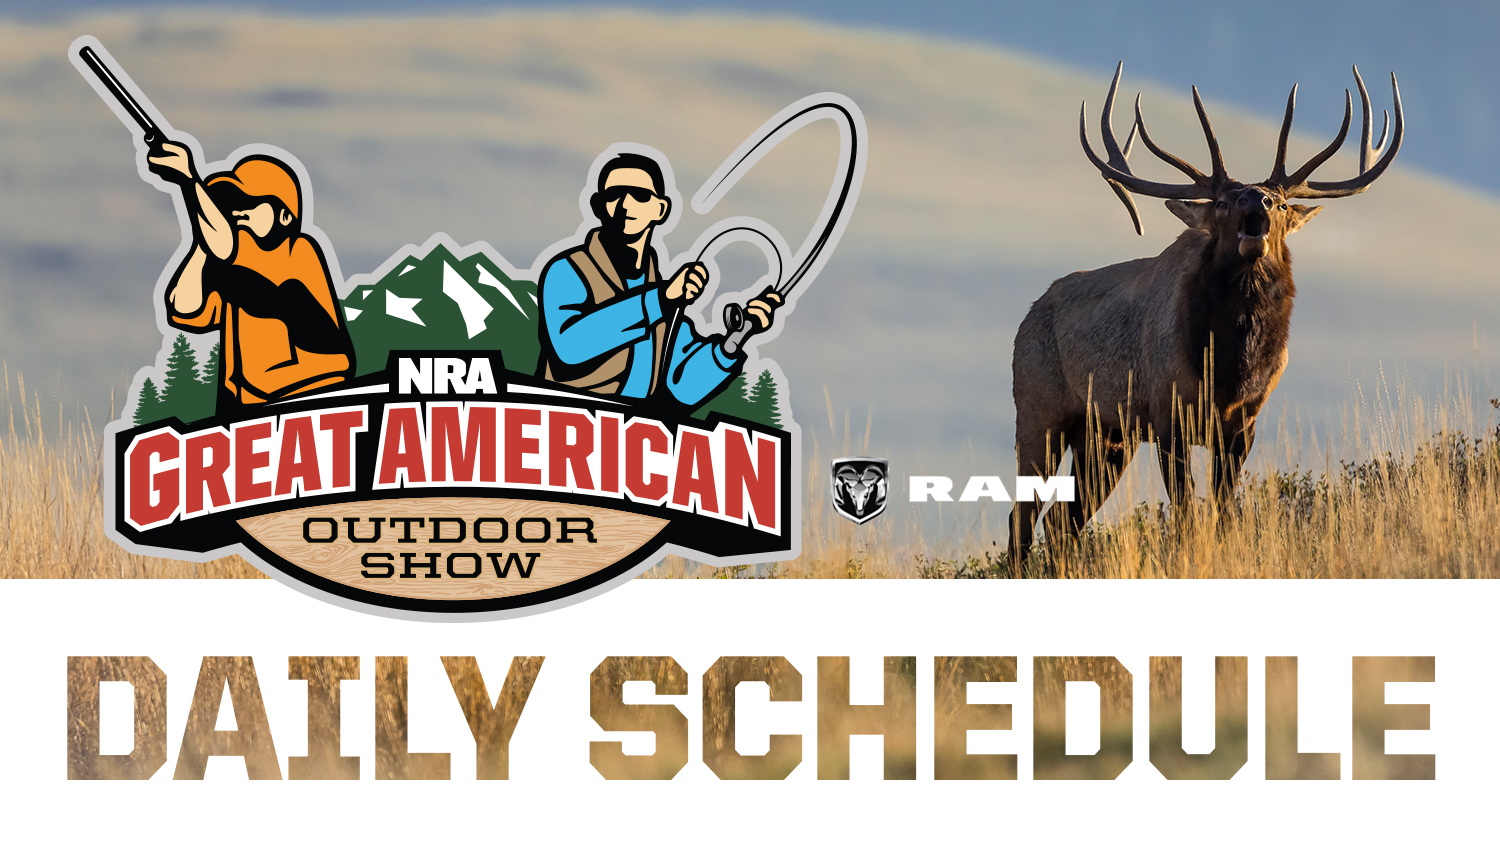 2019 Great American Outdoor Show Daily Schedule - Saturday, February 9